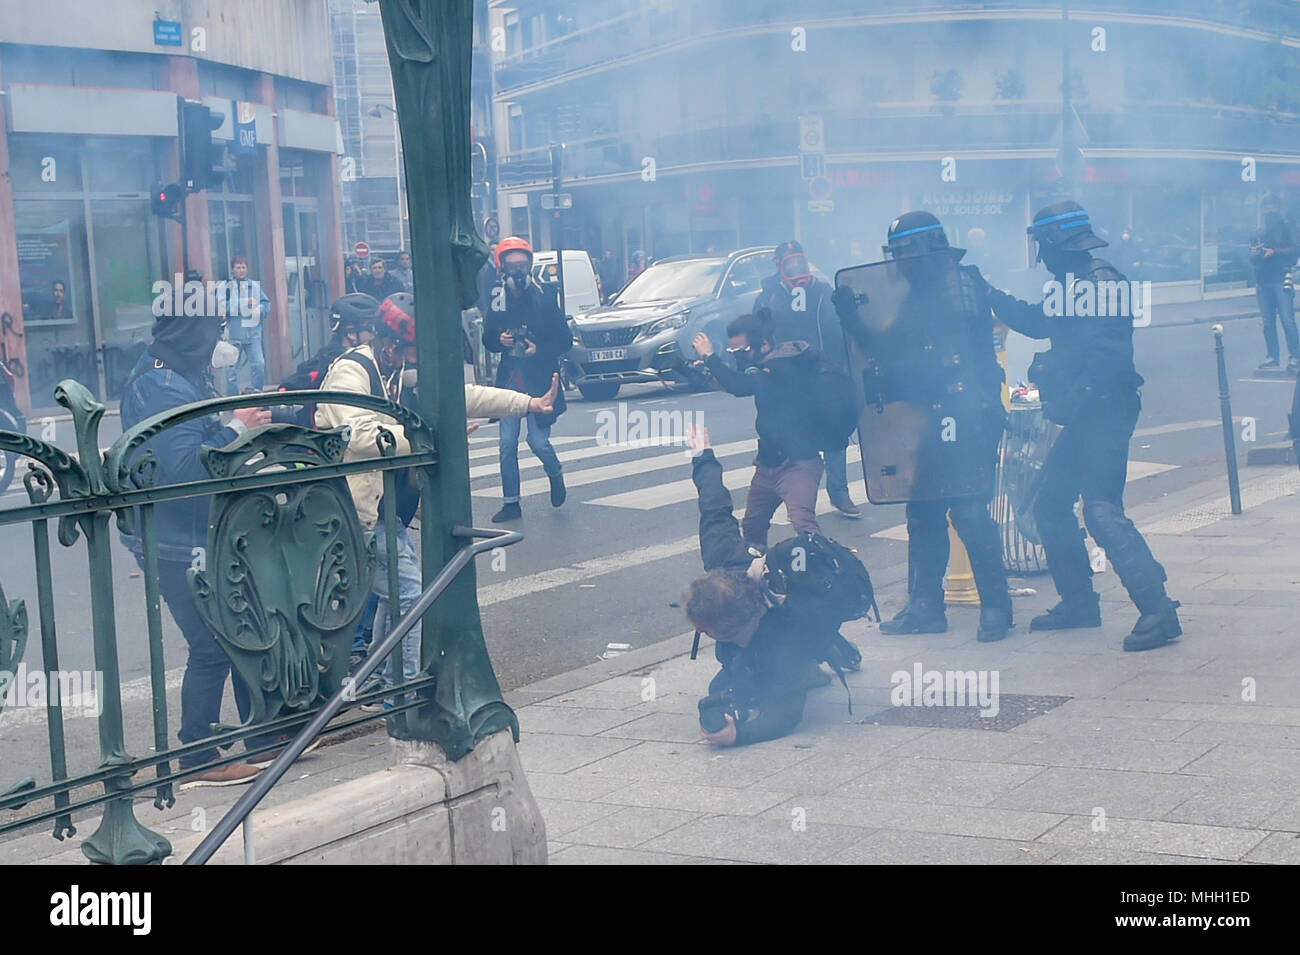 Paris, France. 1st May 2018. Paris police clash with protesters as demonstrations turn violent. PICTURED: A press photographer is pushed to the ground by police. Credit: Peter Manning/Alamy Live News - Stock Image